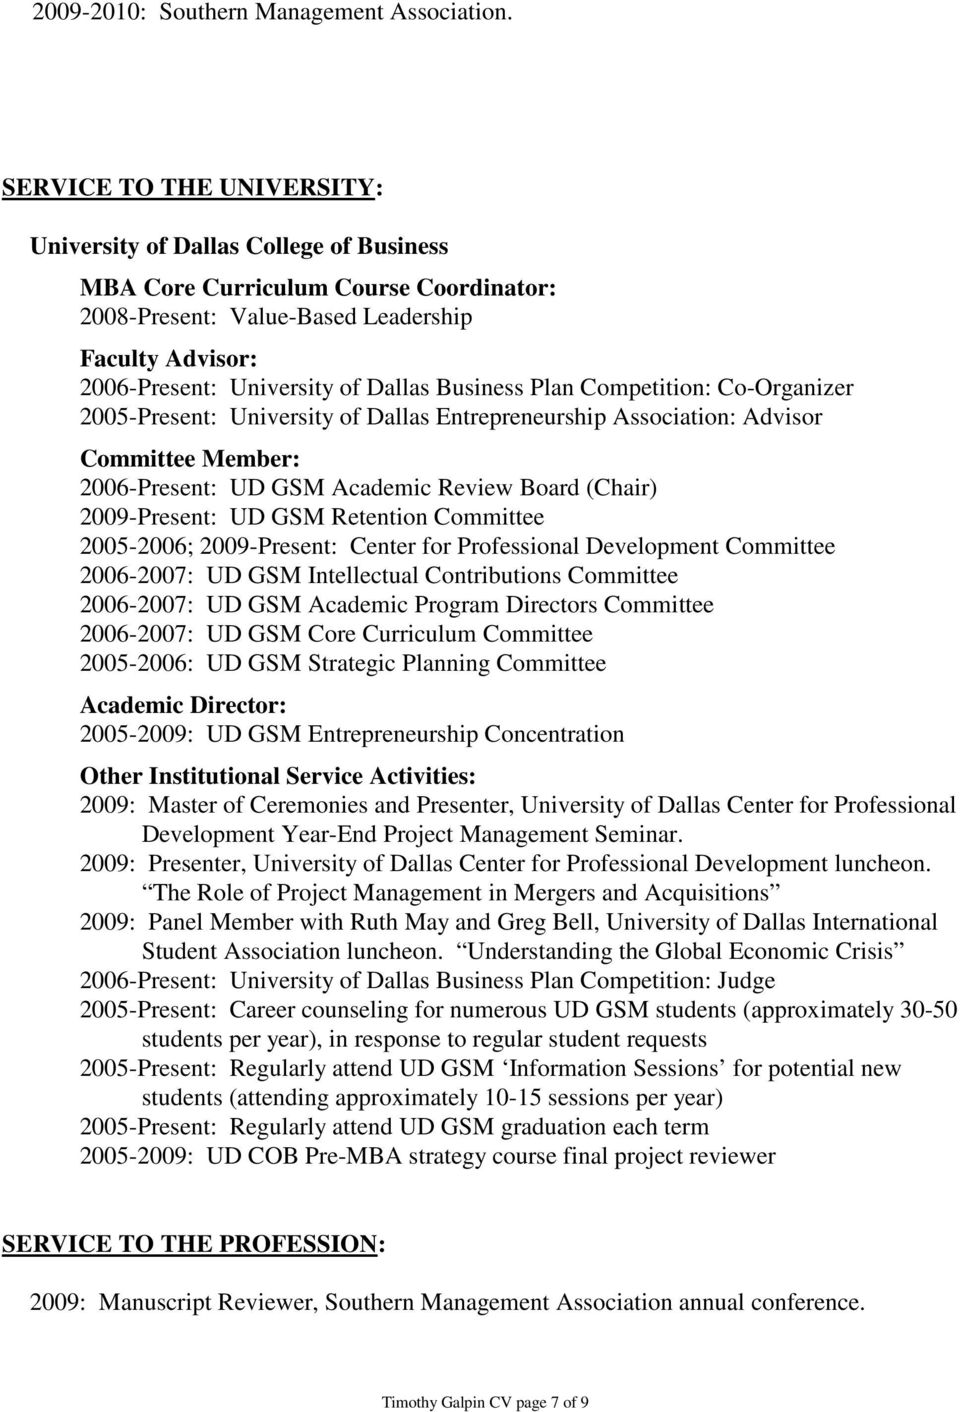 Business Plan Competition: Co-Organizer 2005-Present: University of Dallas Entrepreneurship Association: Advisor Committee Member: 2006-Present: UD GSM Academic Review Board (Chair) 2009-Present: UD